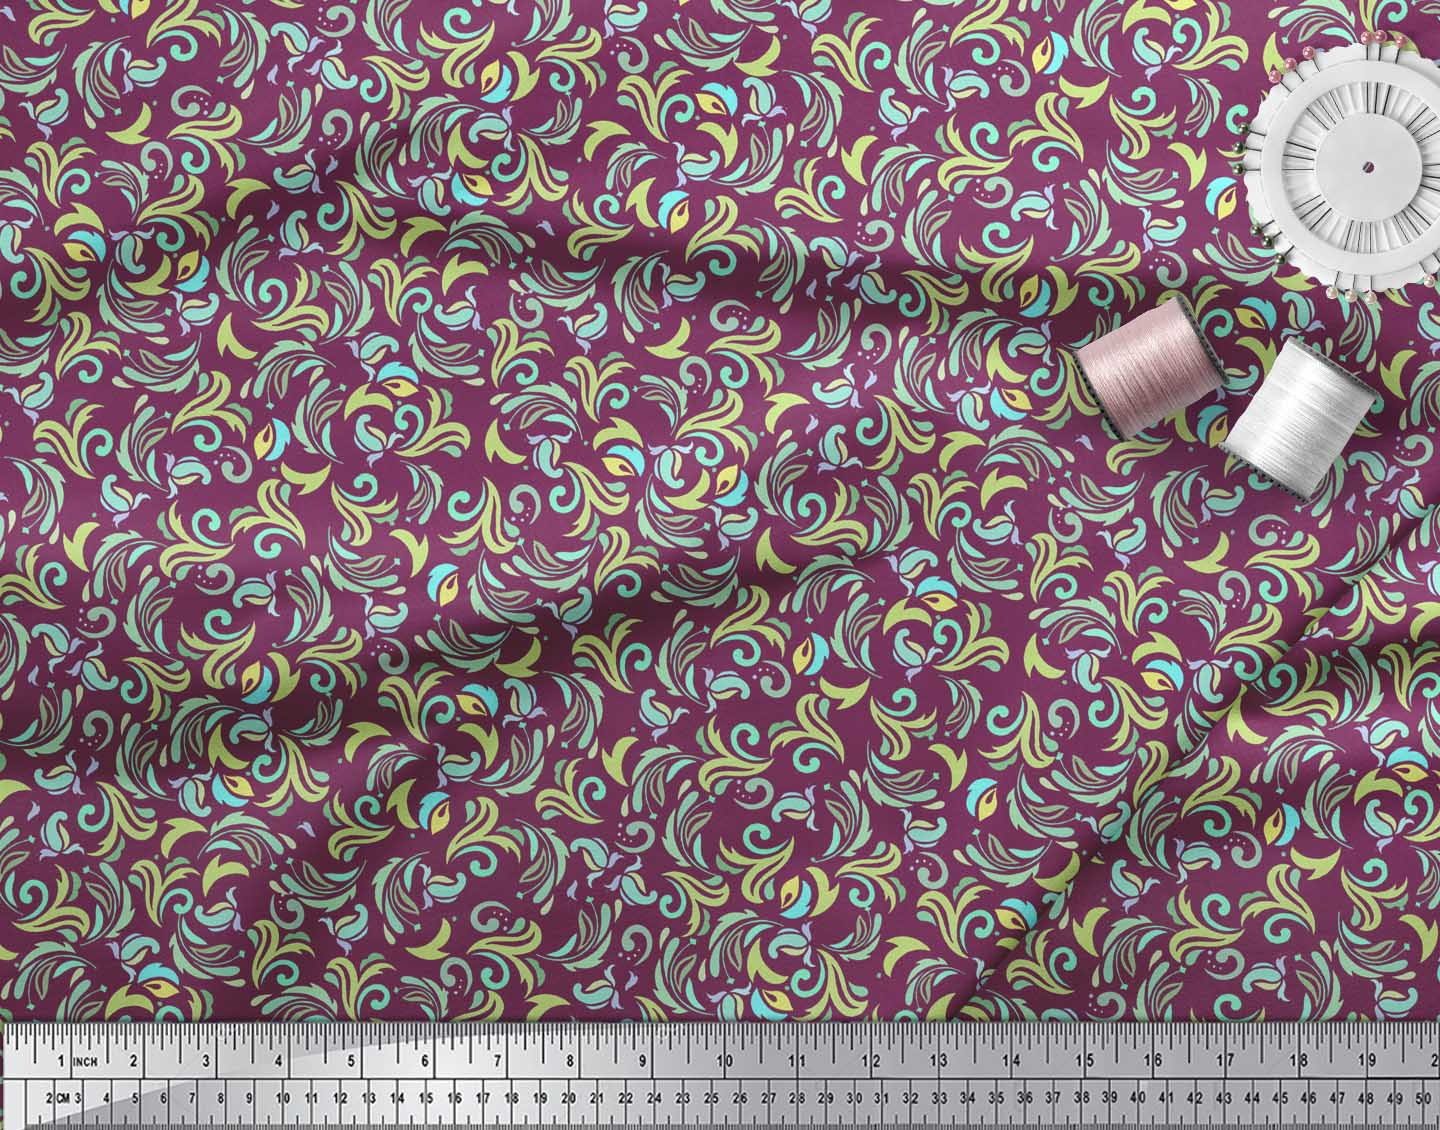 Soimoi-Pink-Cotton-Poplin-Fabric-Artistic-Floral-Printed-Craft-Fabric-hkn thumbnail 3